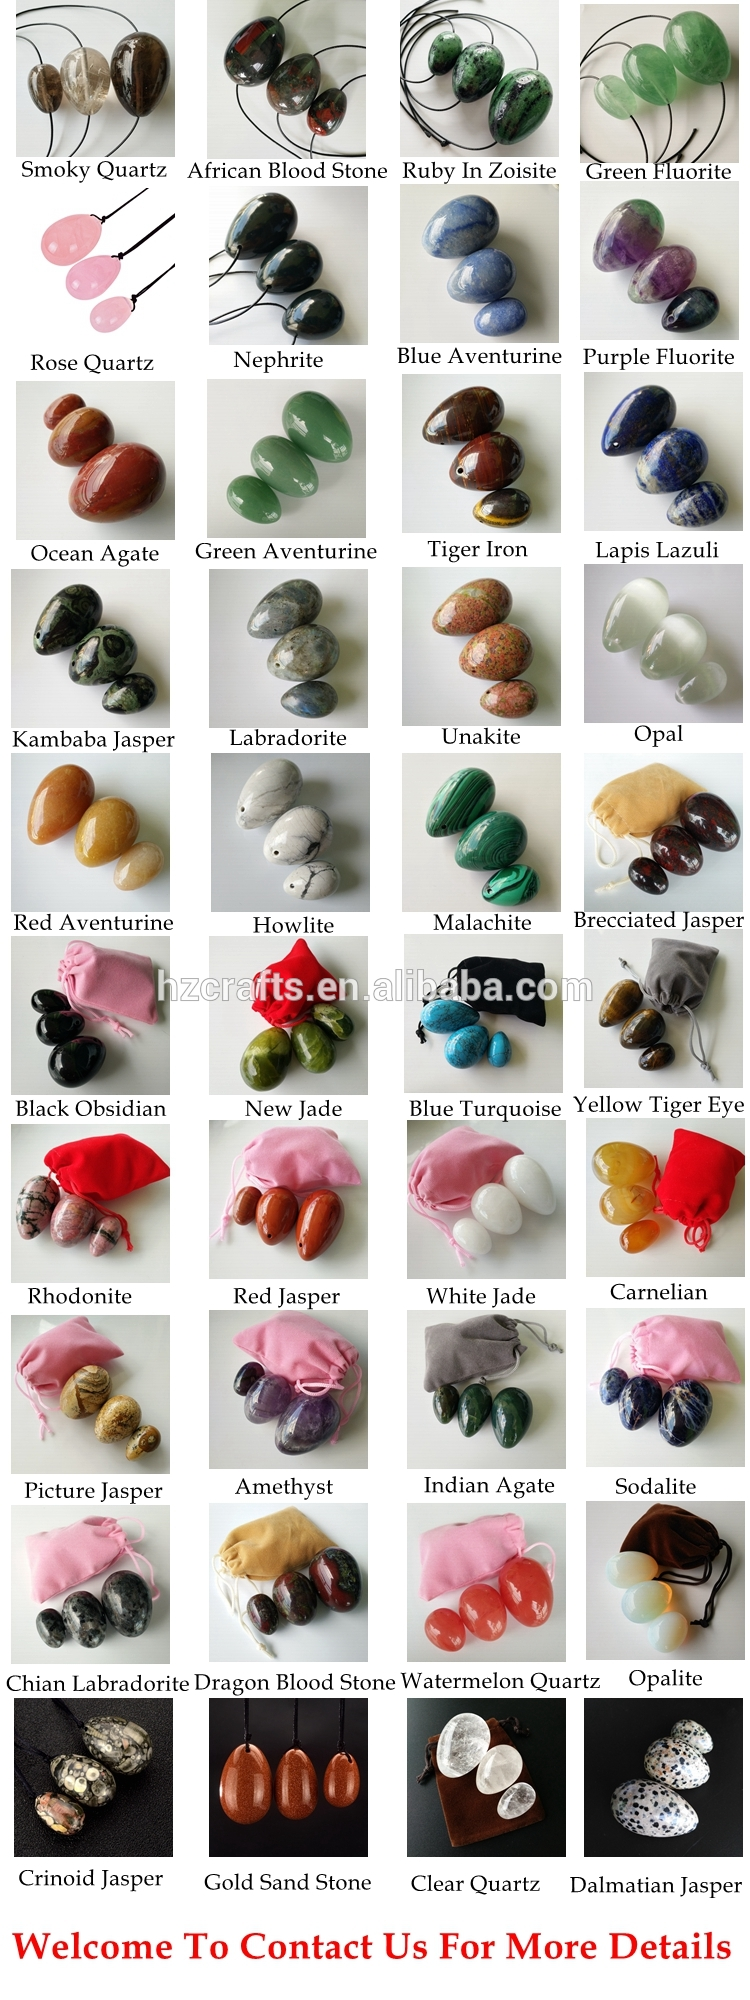 woman Kegel exercise tool lady drilled natural pink nephrite stone eggs toy